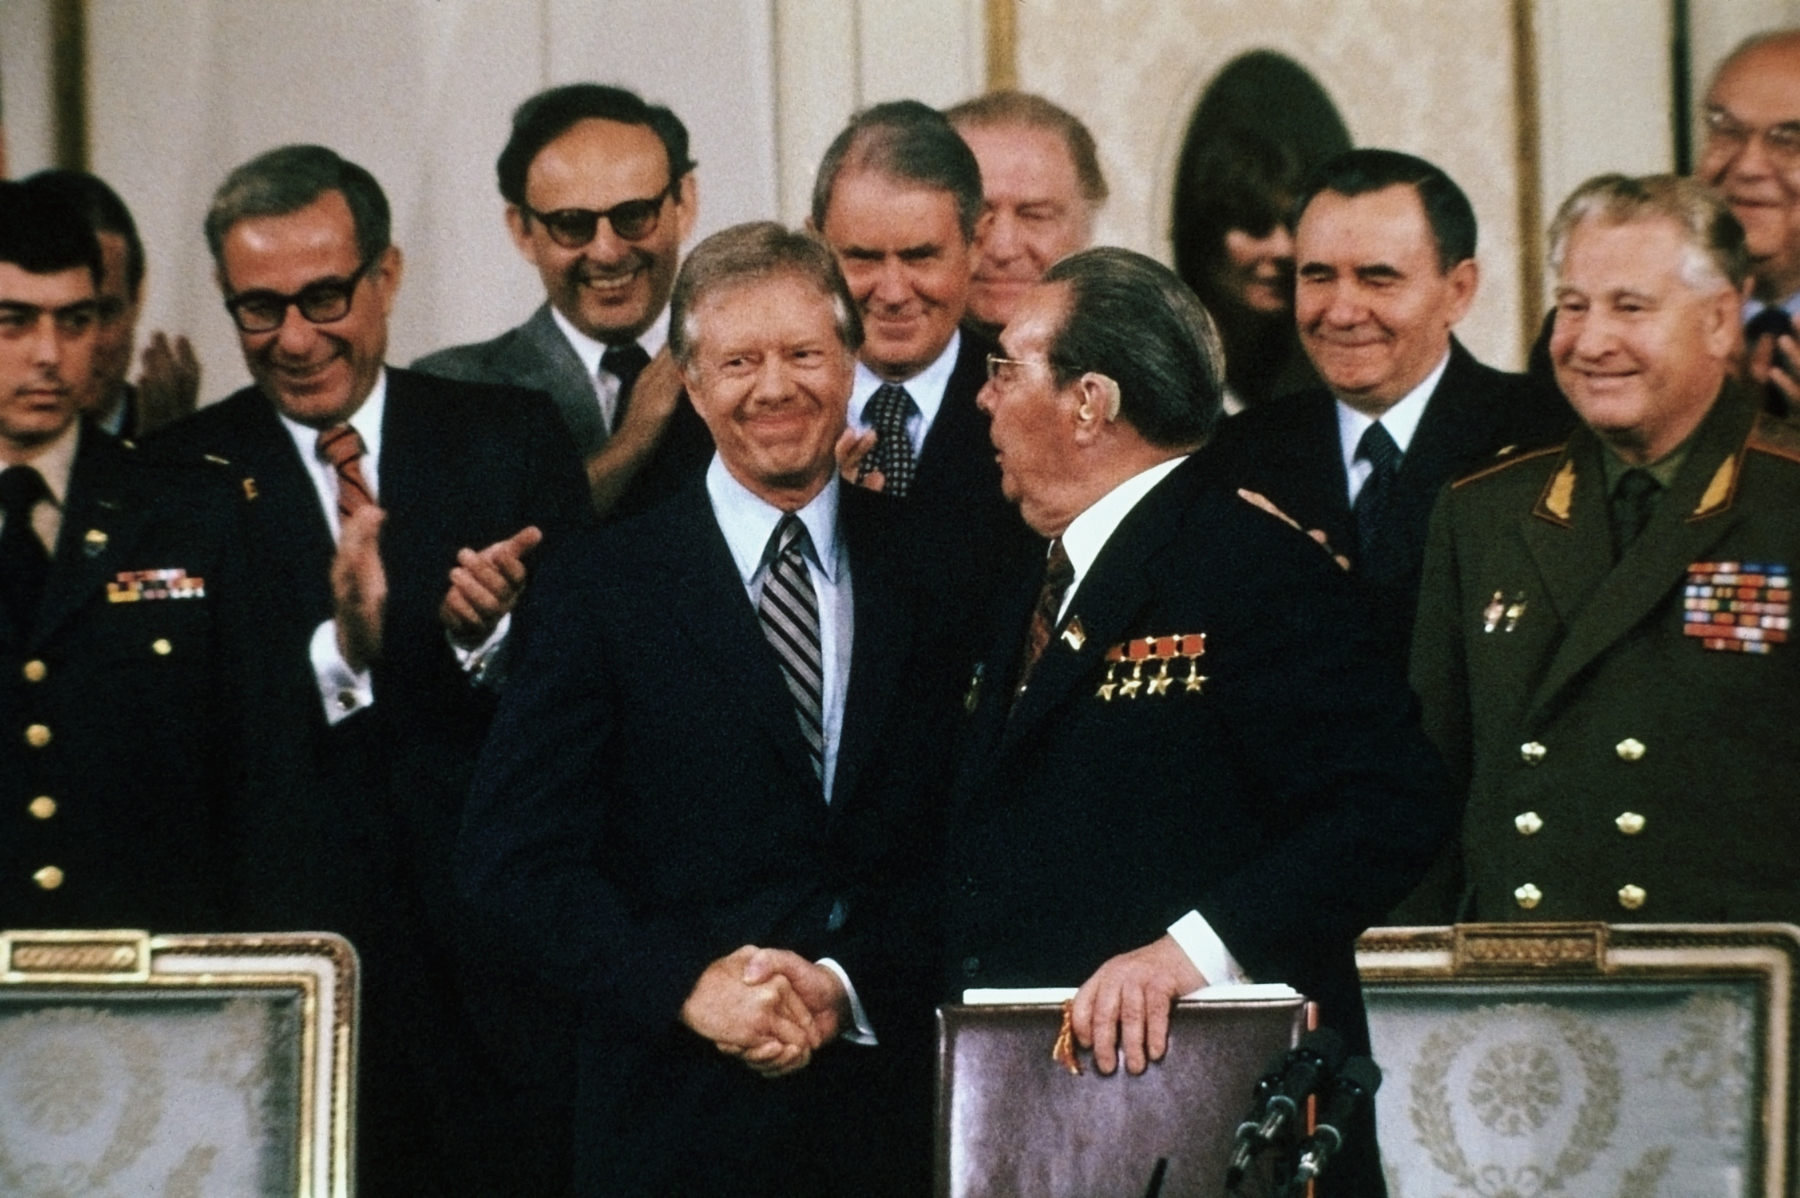 U. S. President Jimmy Carter and Soviet Premier Leonid Brezhnev shake hands after signing the SALT II Treaty in Vienna. (Getty)